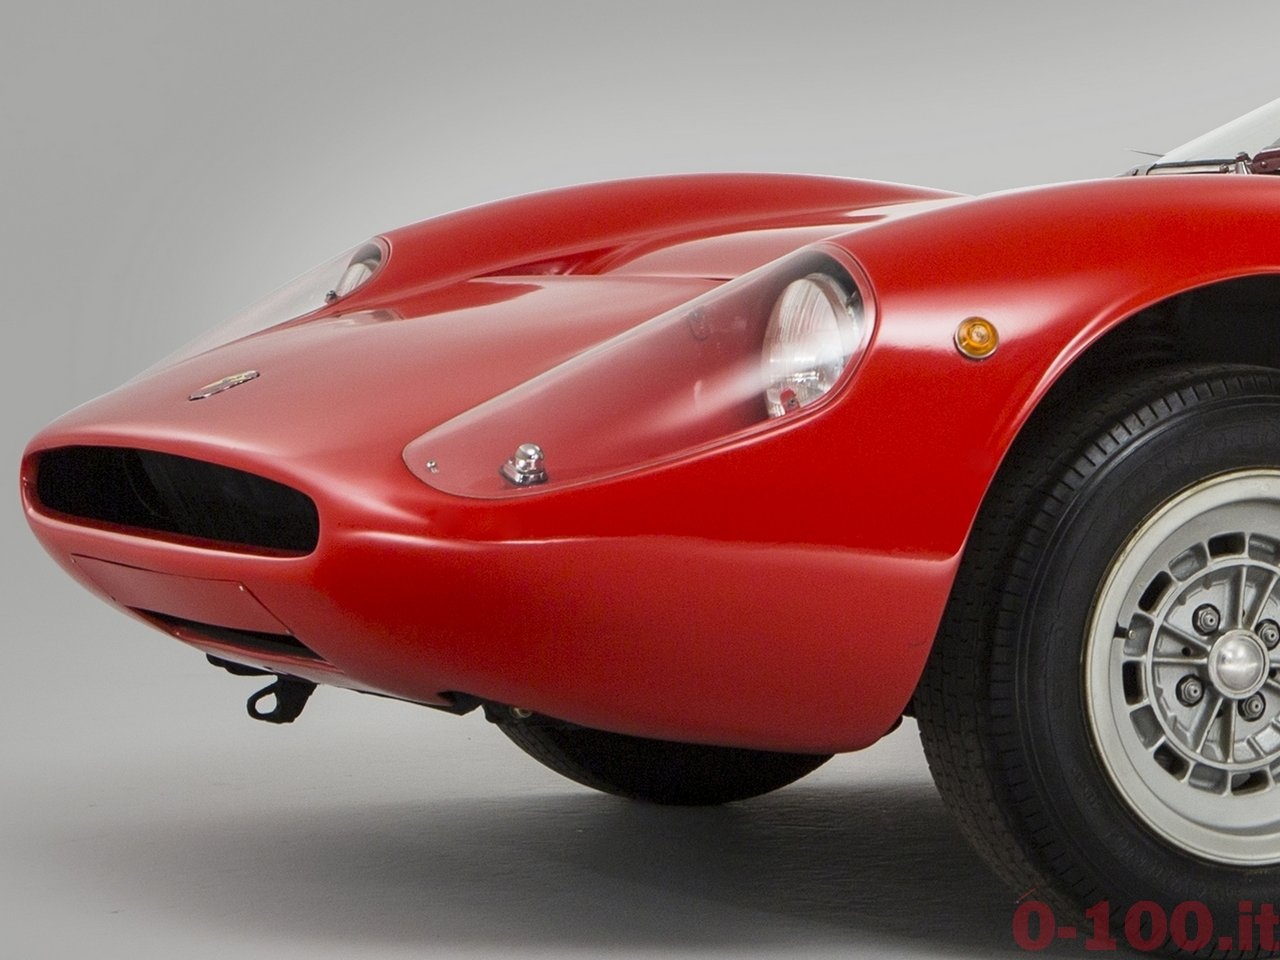 bonhams-at-goodwood-revival-2014-abarth-1300-ot-periscopio-coupe-1965_0-100_10